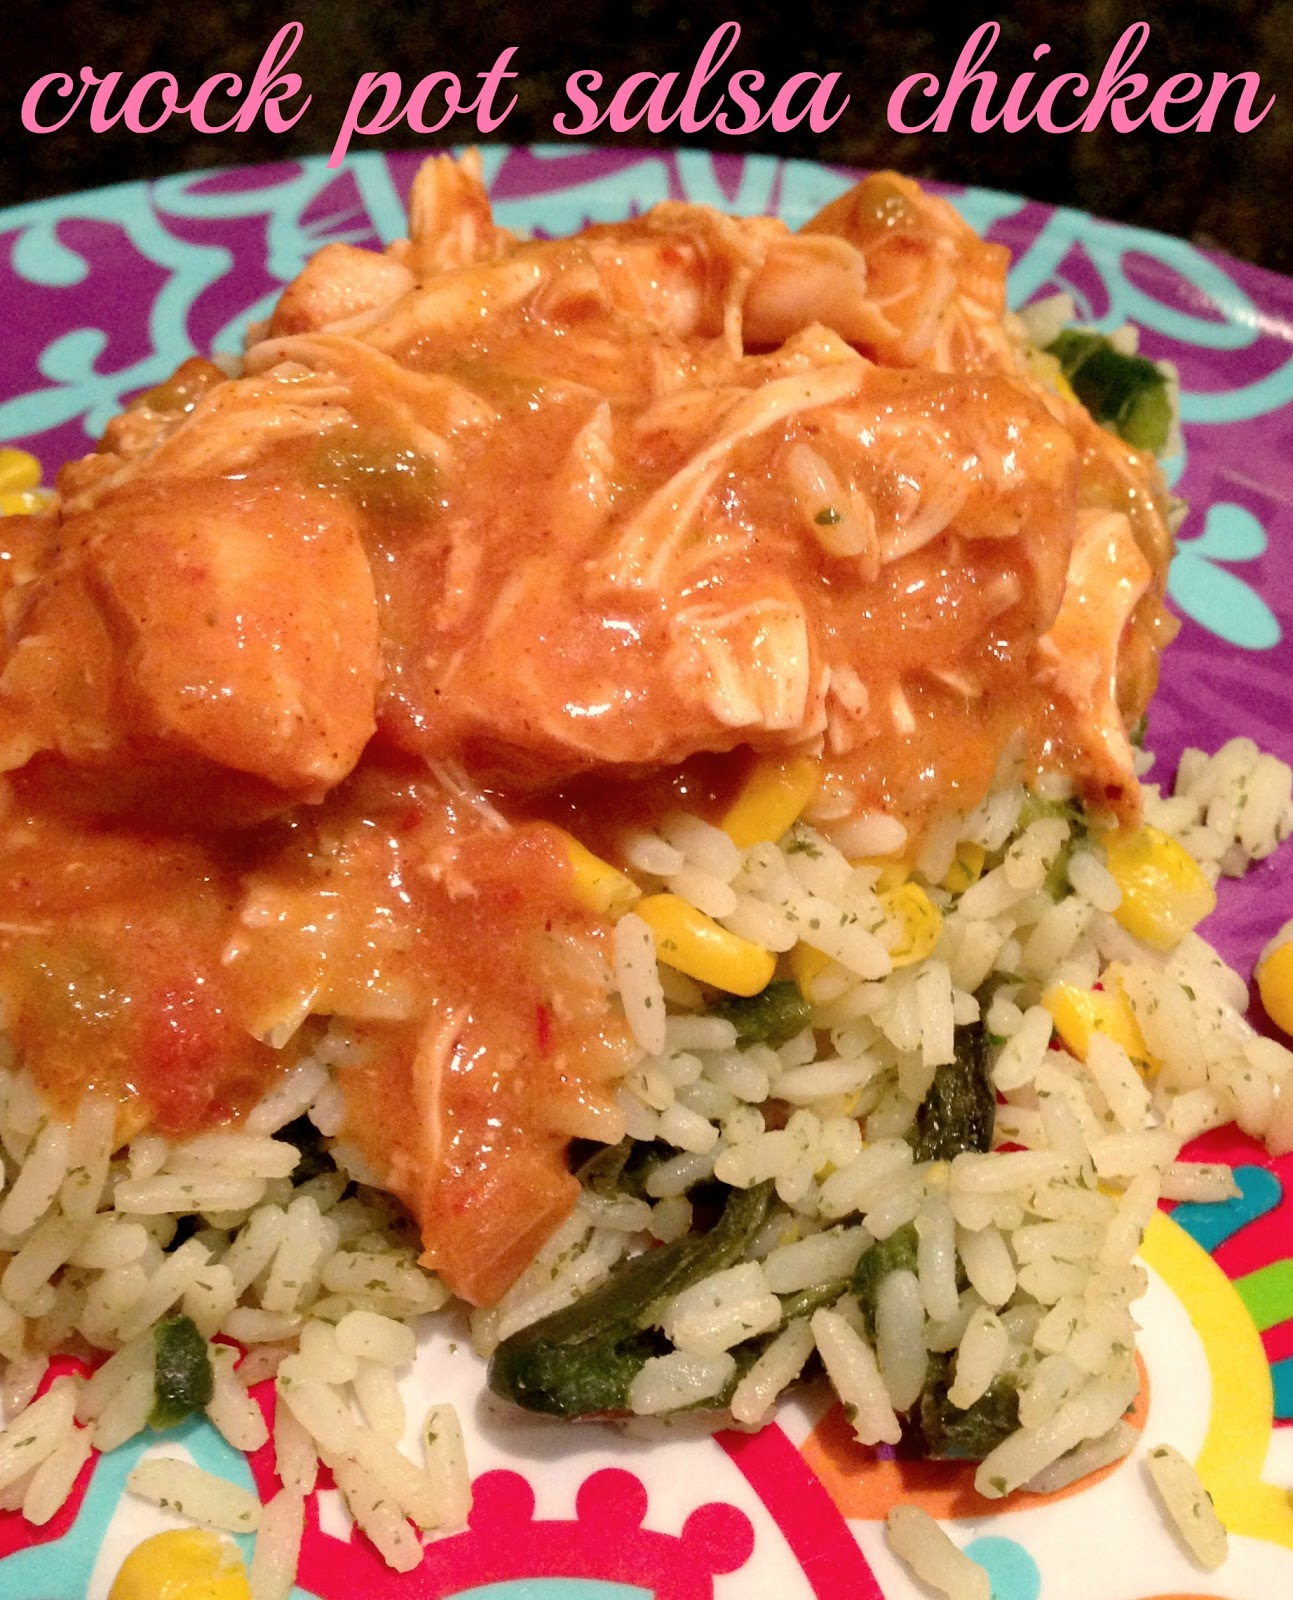 Dec 06, · Season the chicken with adobo (or salt), garlic powder and cumin then place in the slow cooker and top with salsa. Cover and cook LOW for 6 hours. Top with cheese, cover and cook until melted, about 5 minutes.5/5(50).